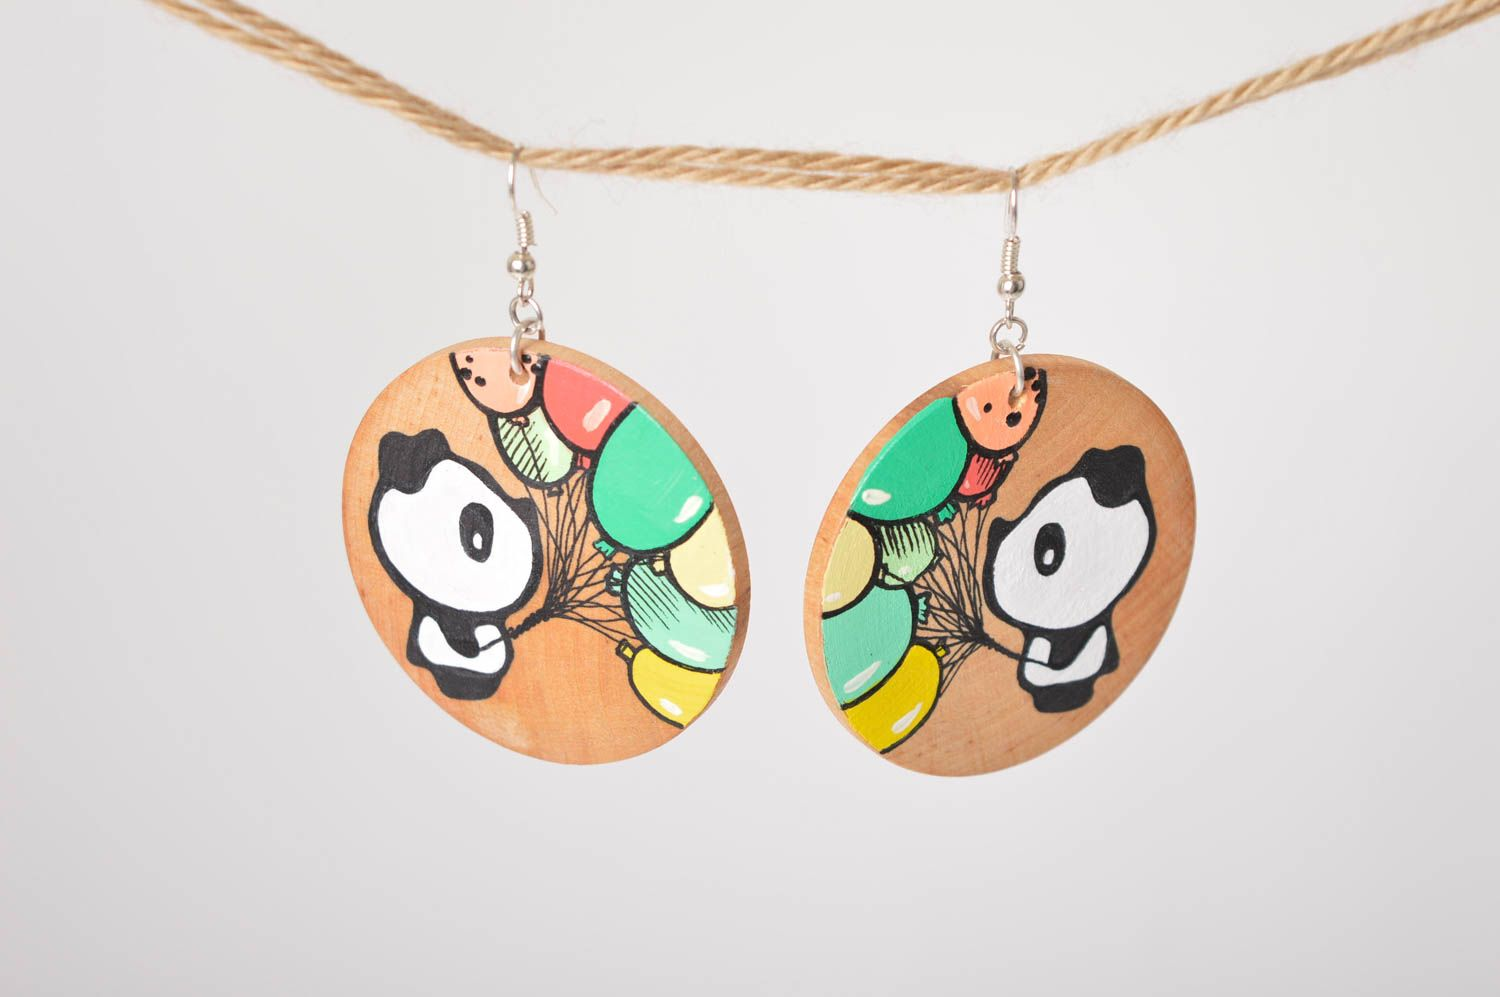 Wooden earrings handmade round earrings cute painted earrings with pandas photo 1